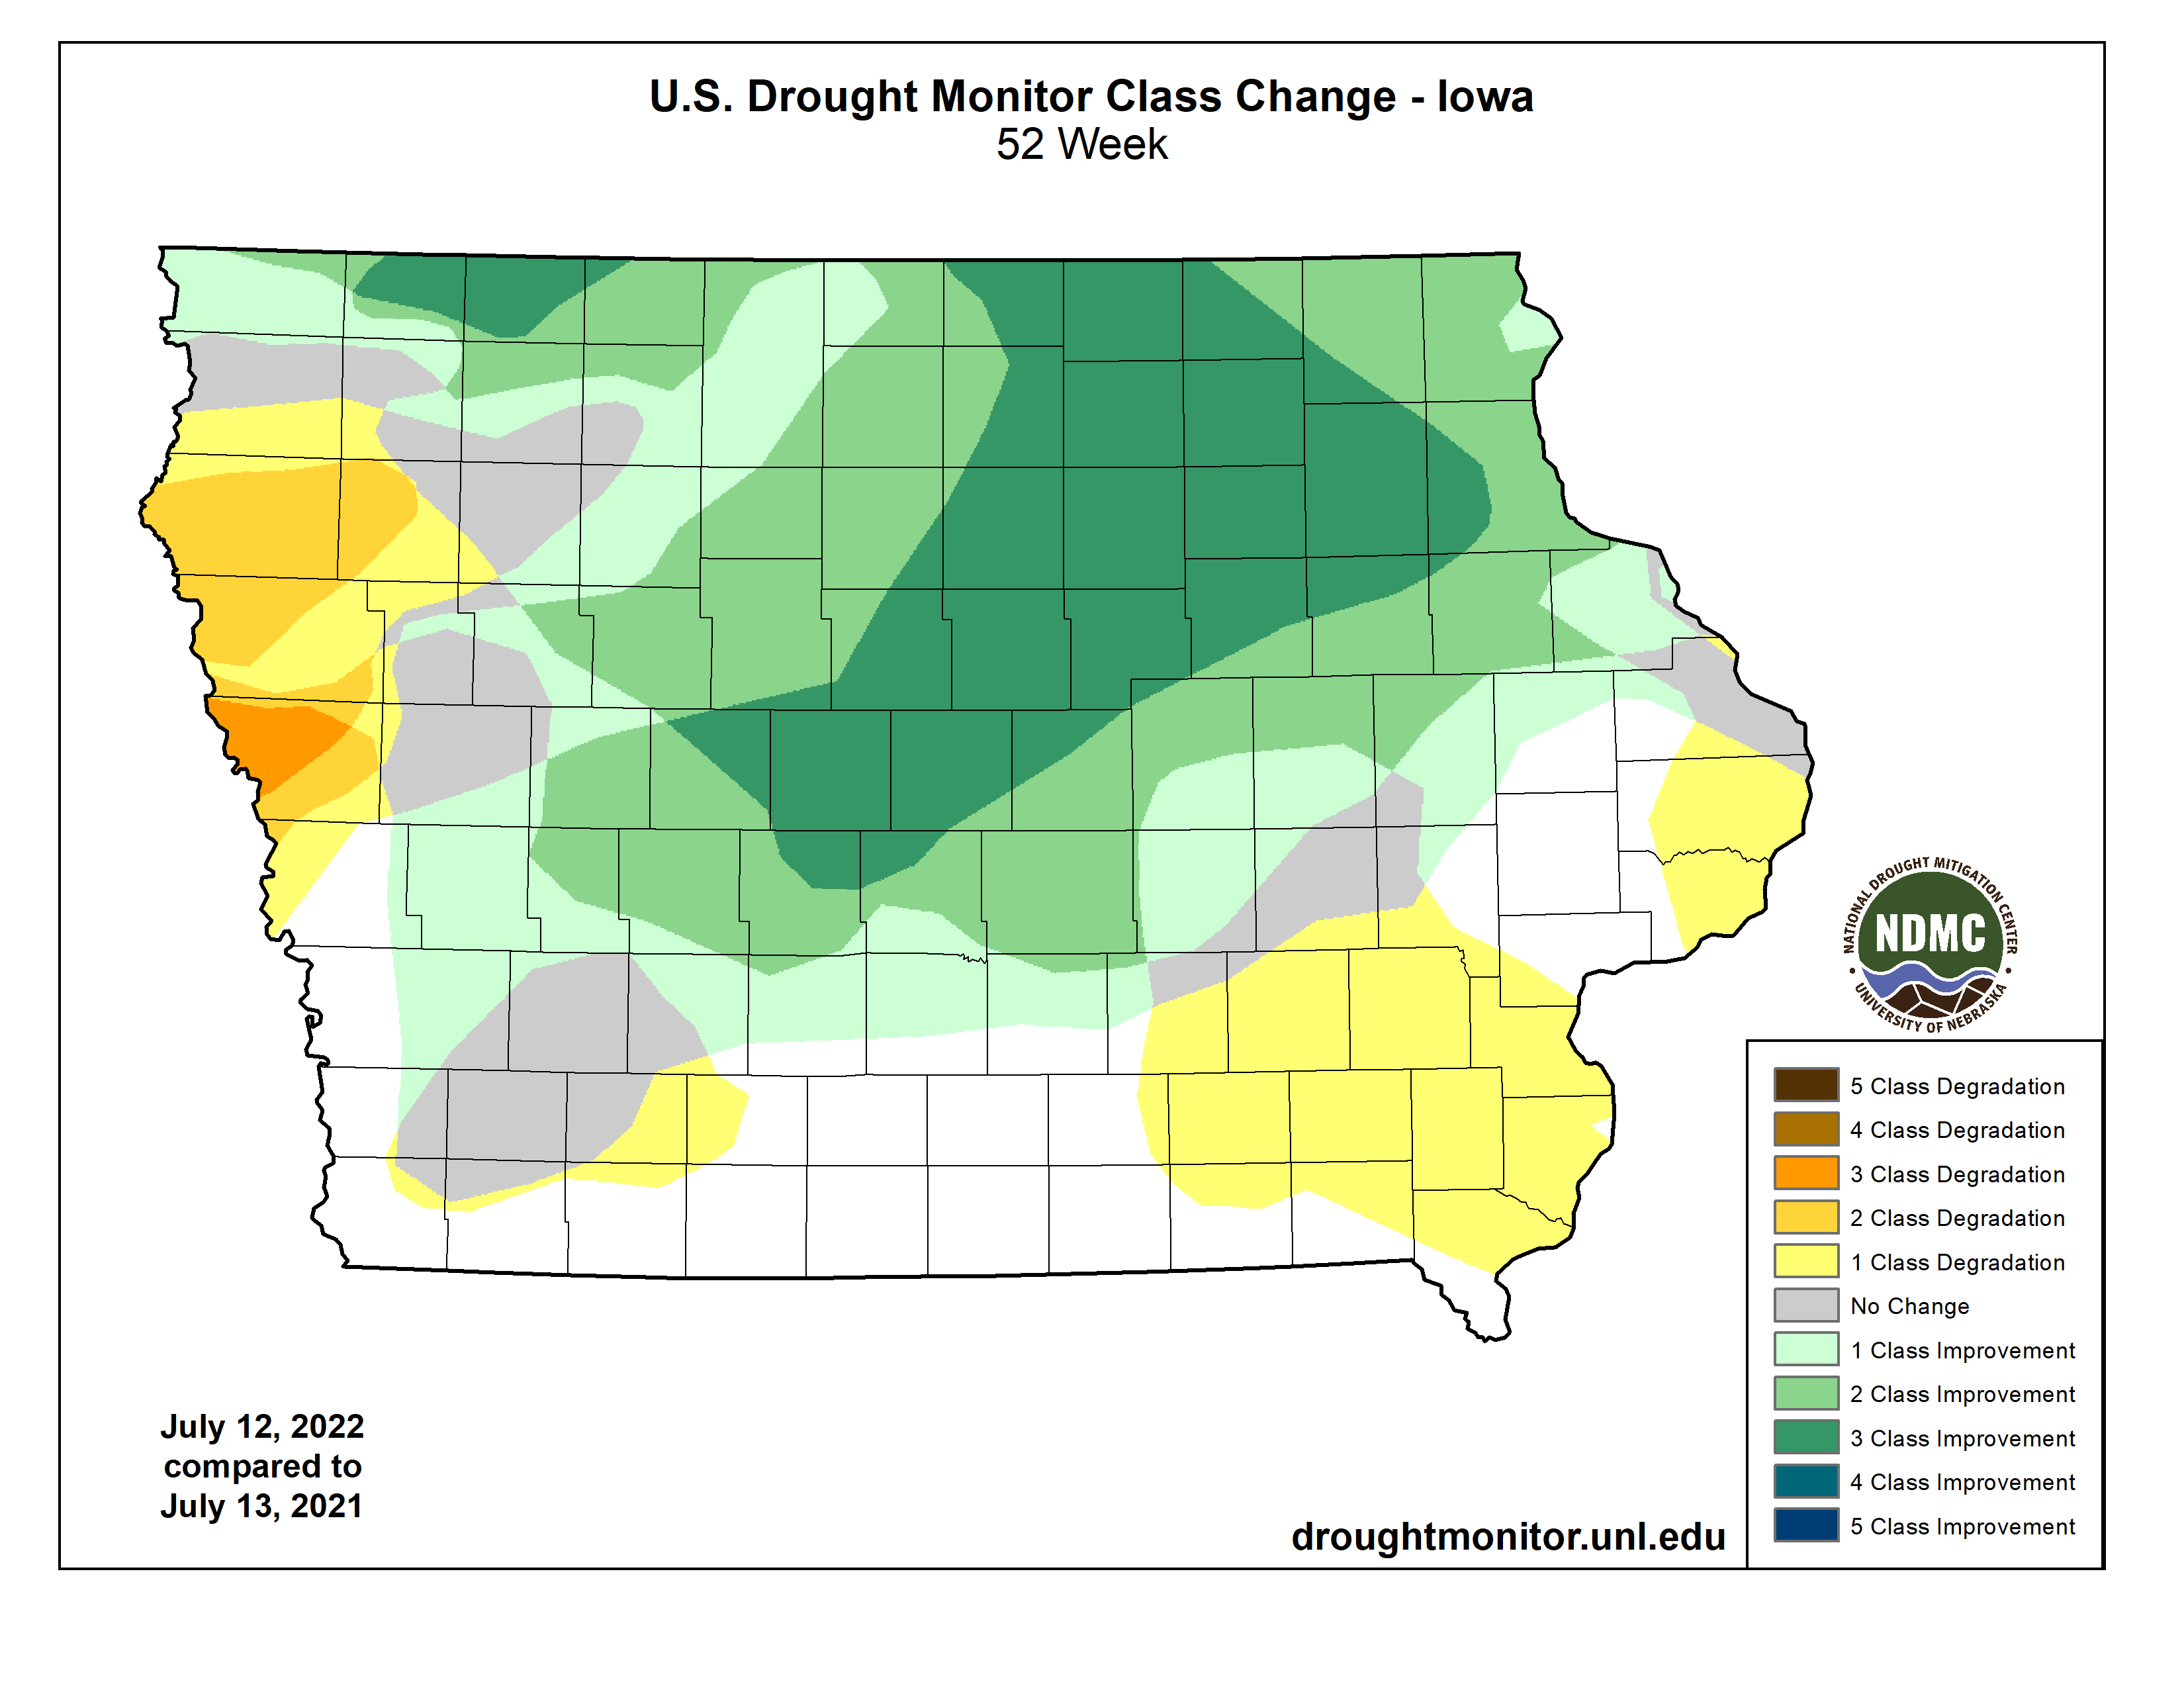 One Year US Drought Monitor Class Change